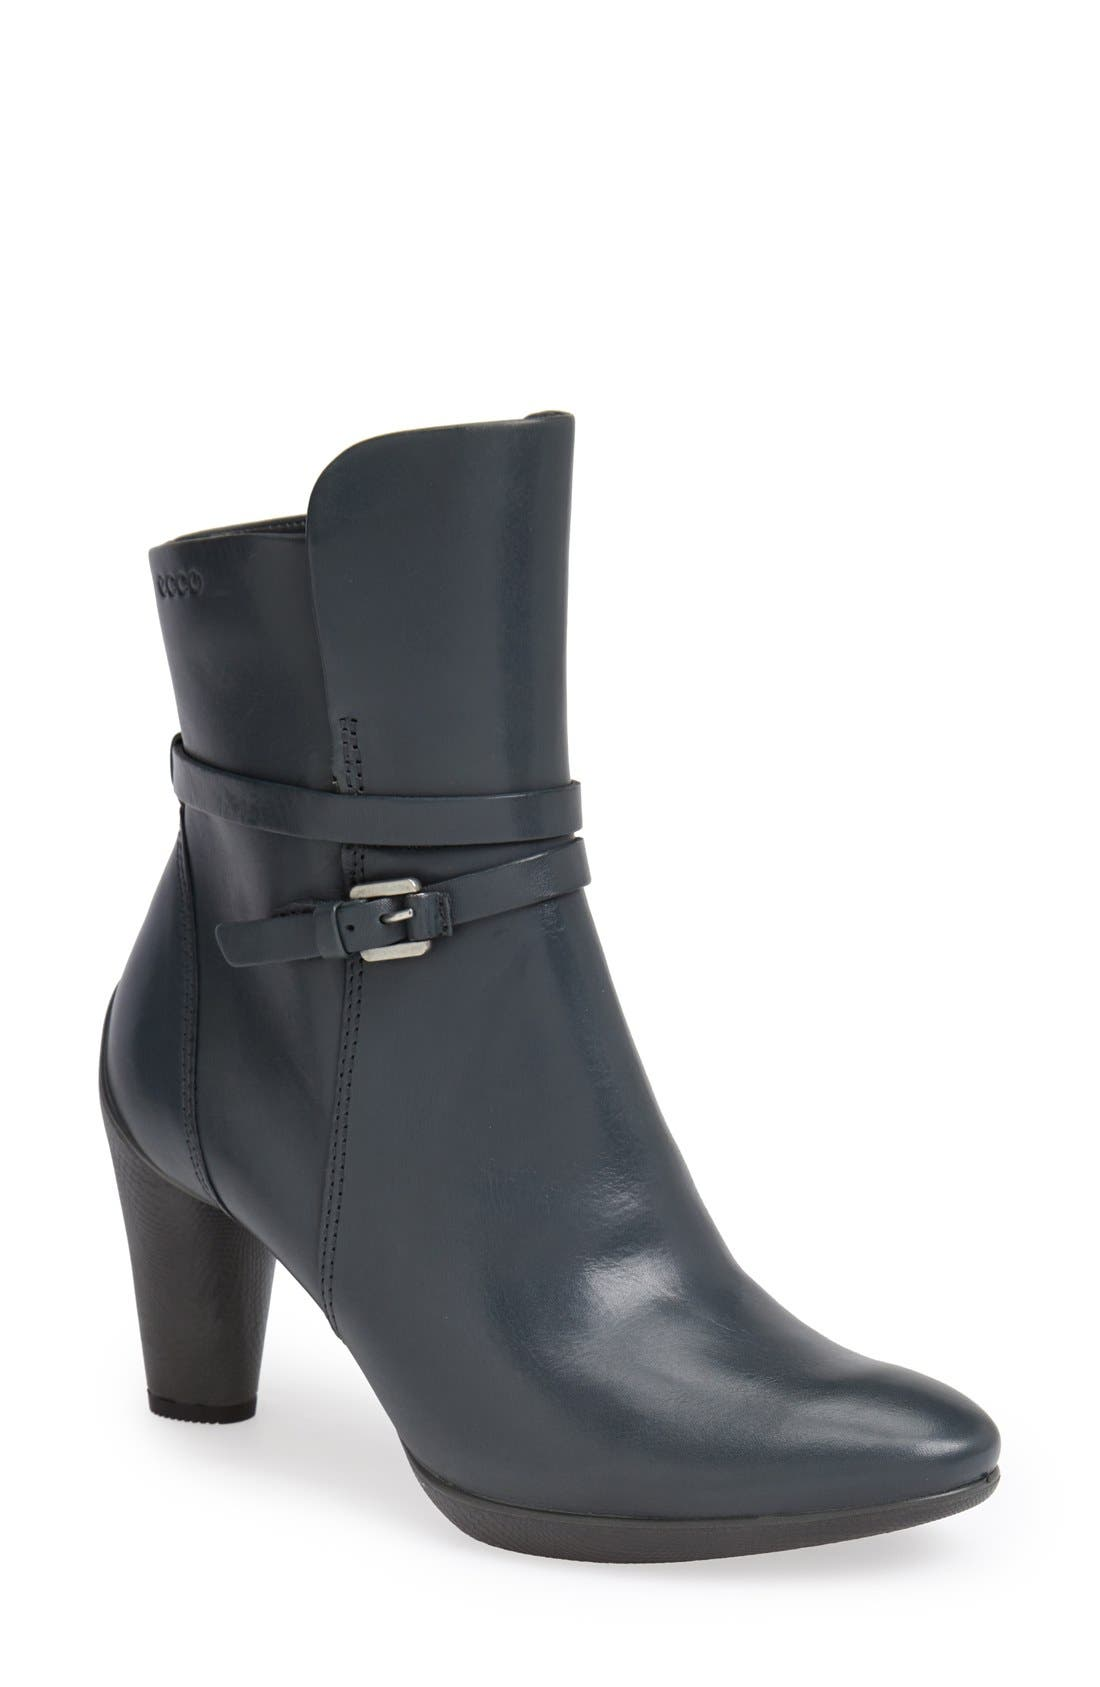 Main Image - ECCO 'Sculptured' Ankle Boot